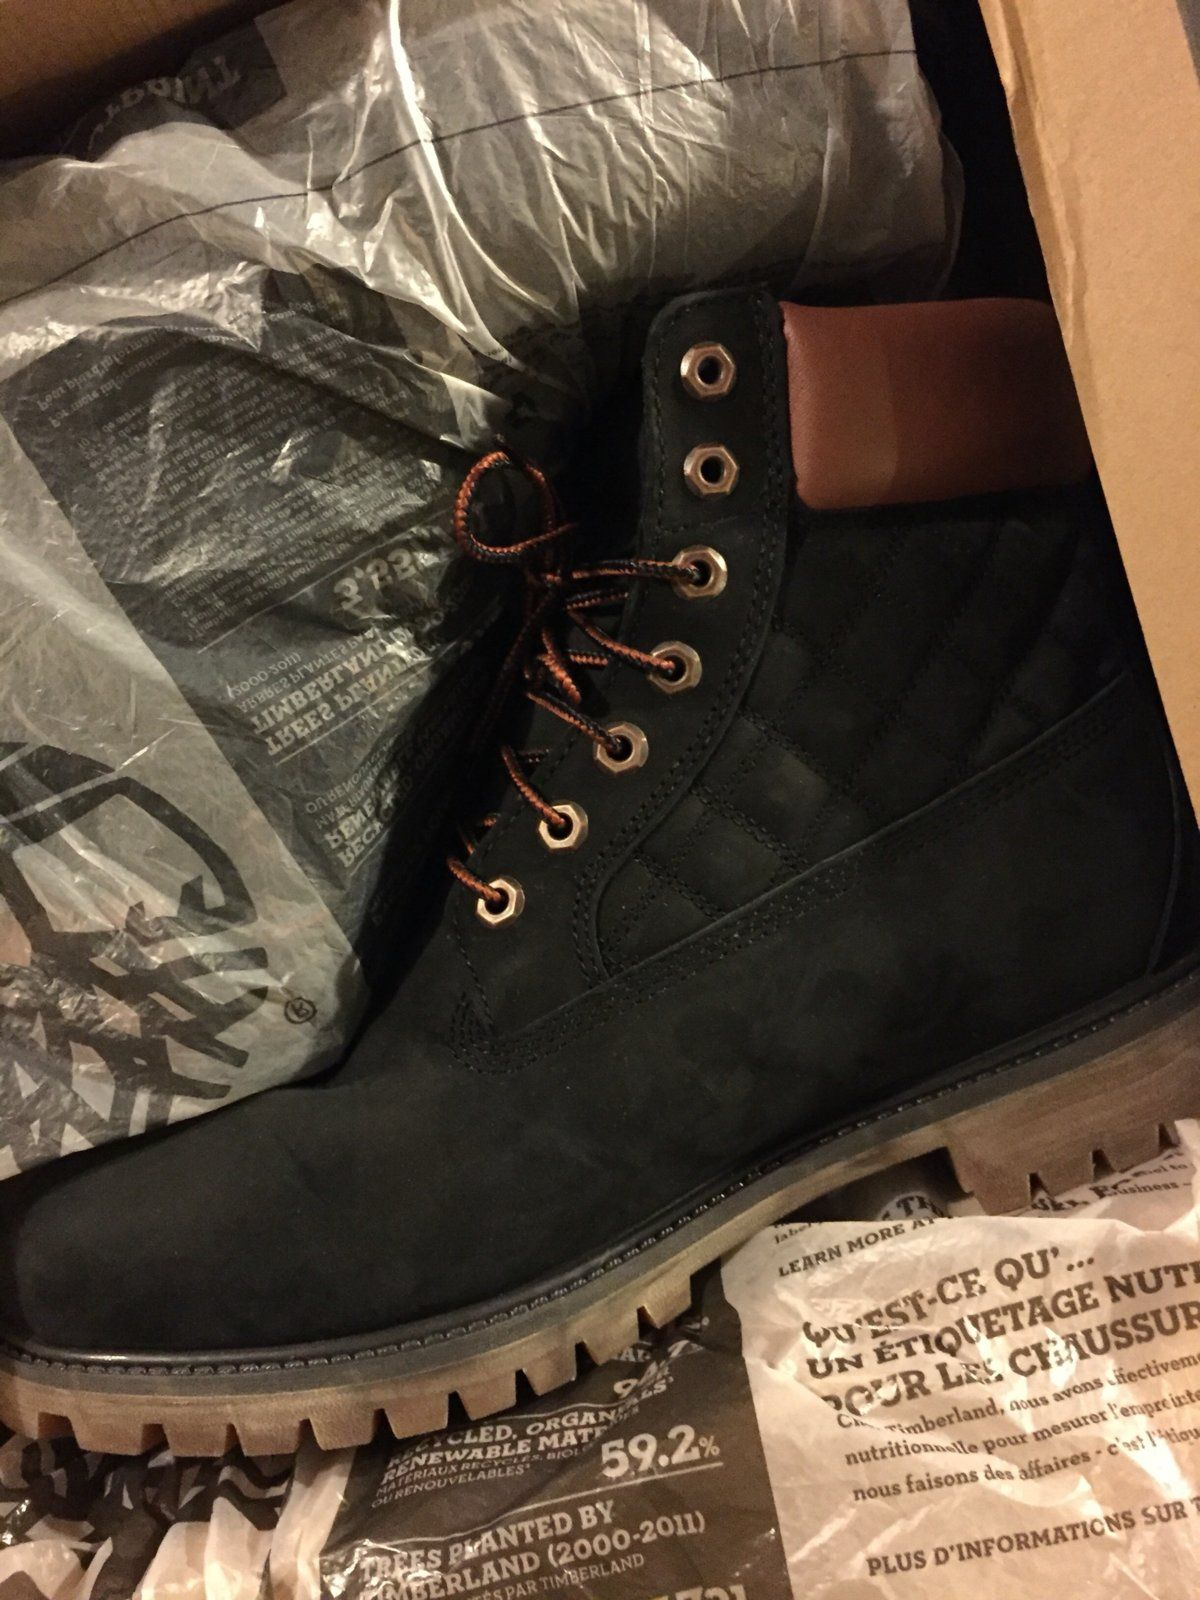 9139c8c3db7d JPG Any other fans of the Timberland 6 inch boot  - IMG 2711.JPG